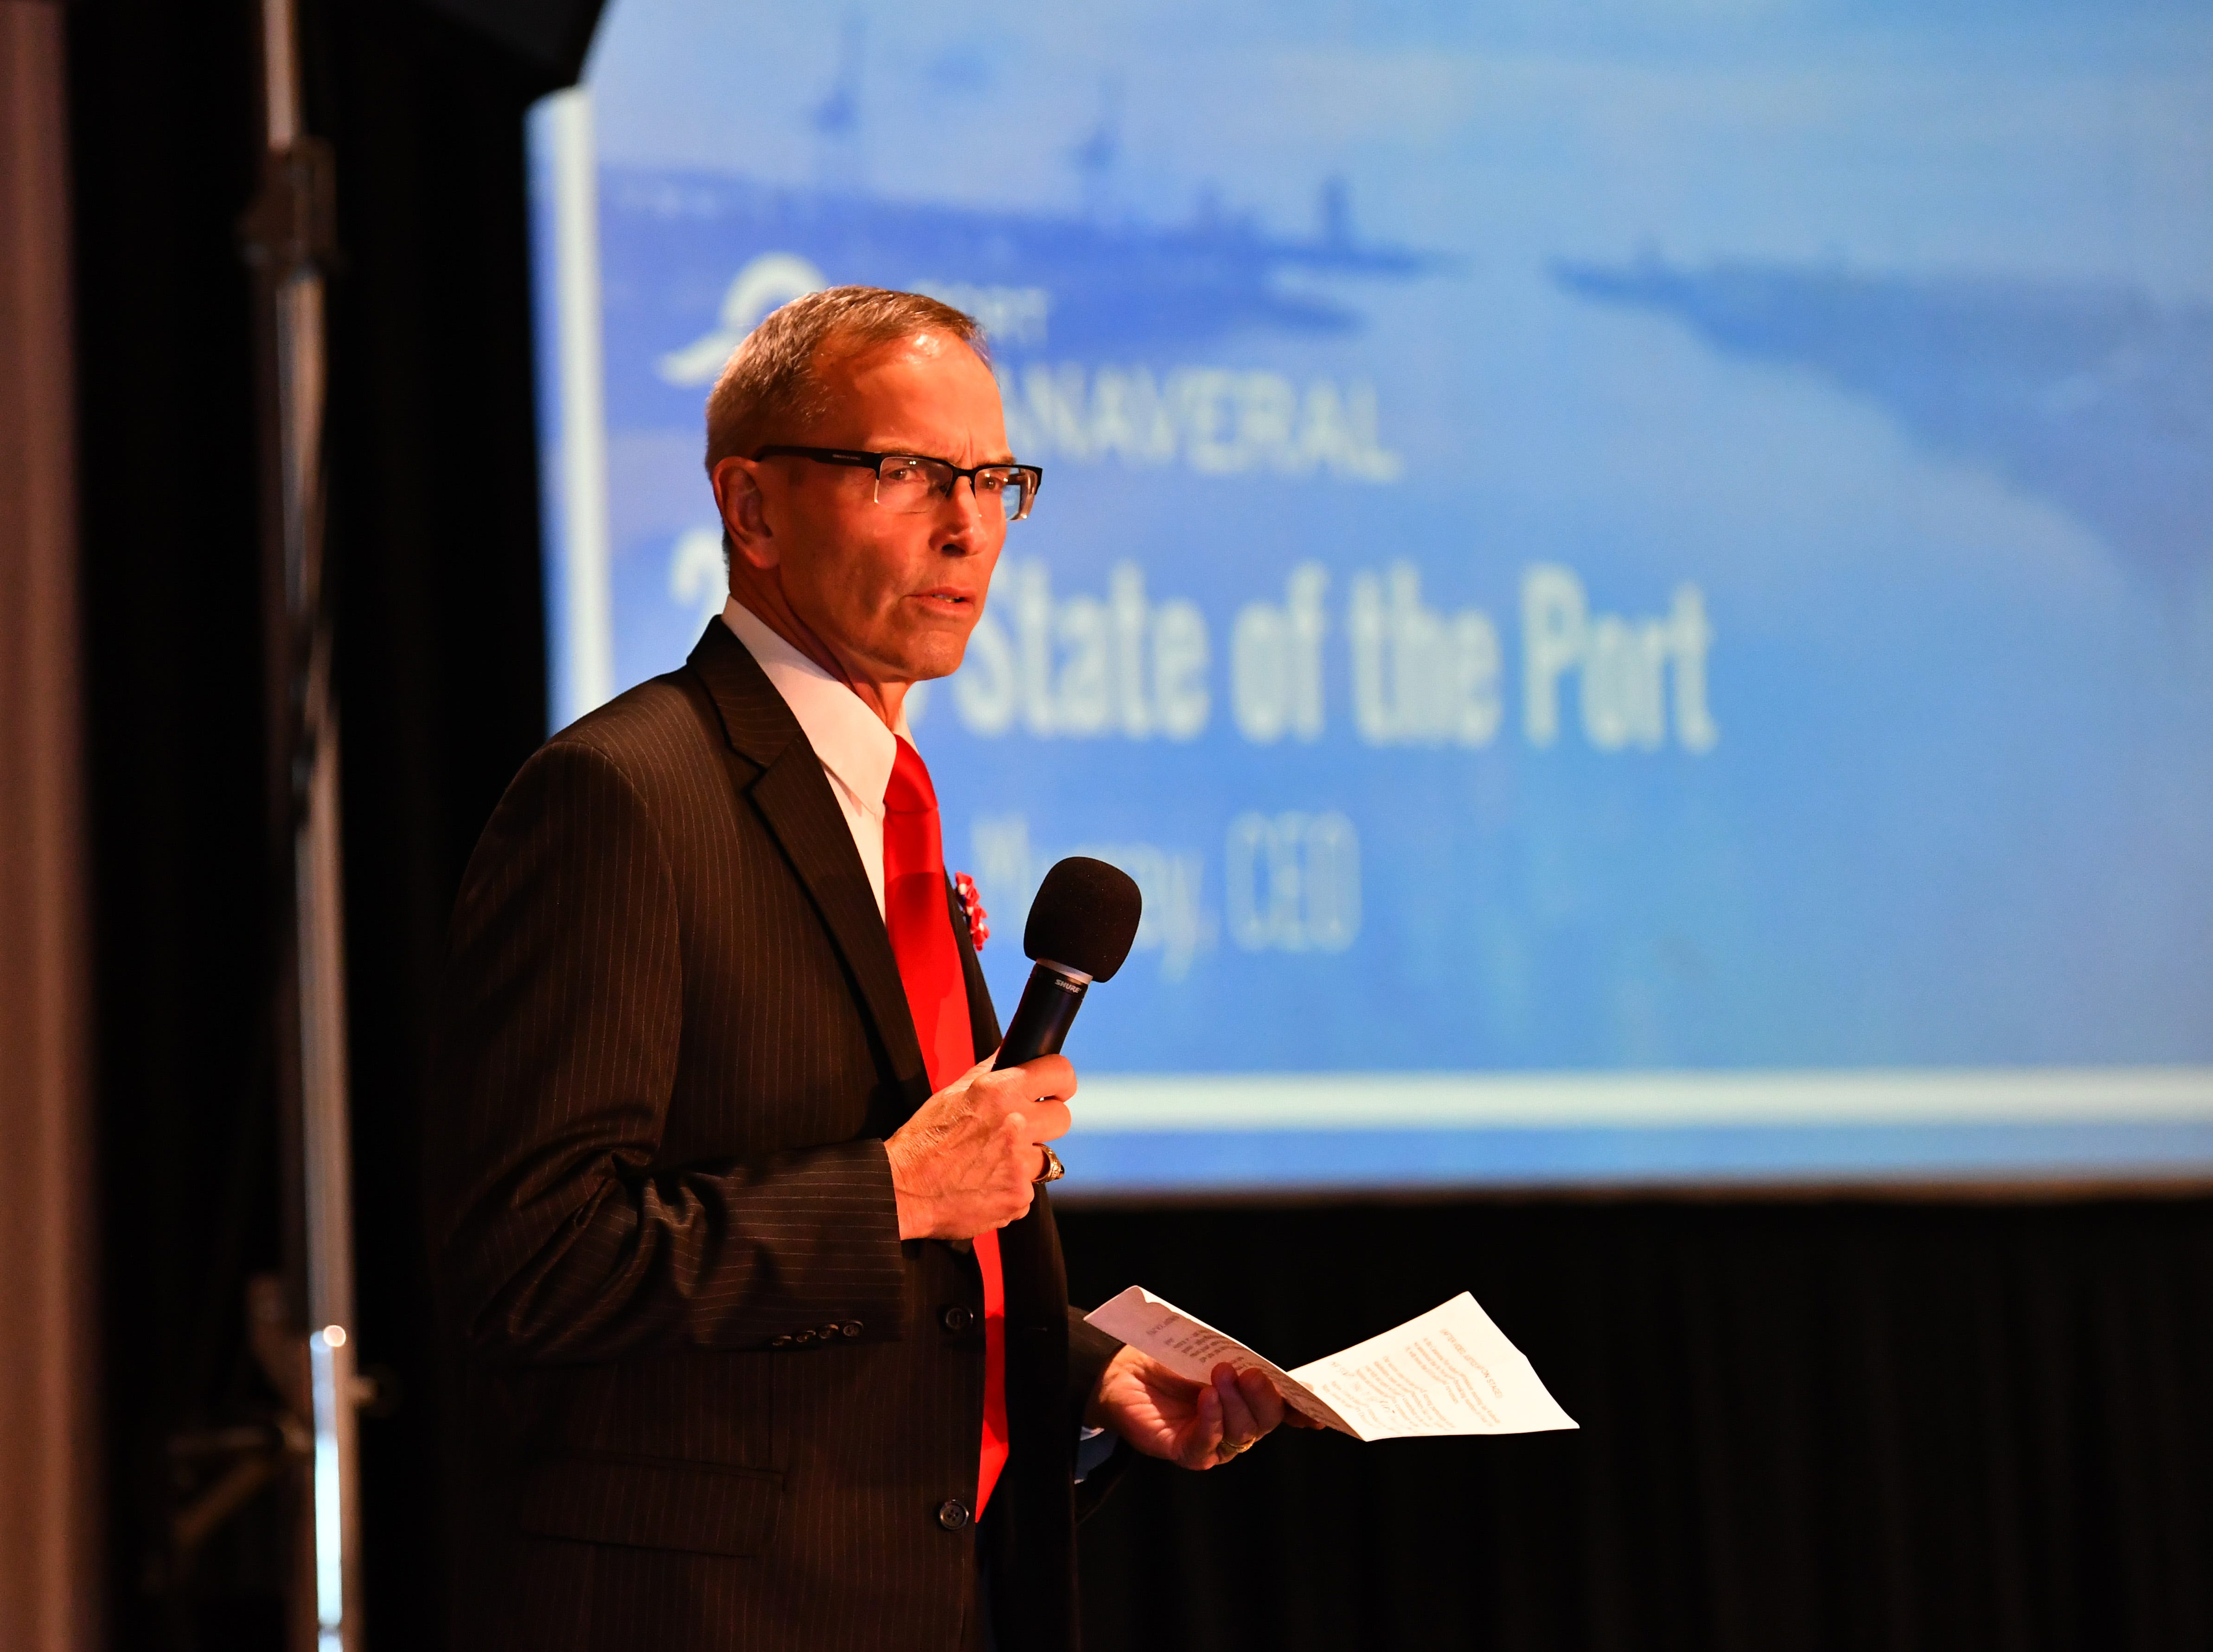 Port Commission Chairman Wayne Justice gave the opening remarks. John Murray, CEO of Port Canaveral, gave a very positive State of the Port Wednesday afternoon in Cruise Terminal 1, celebrating the 65th anniversary of the port and looking to the future.